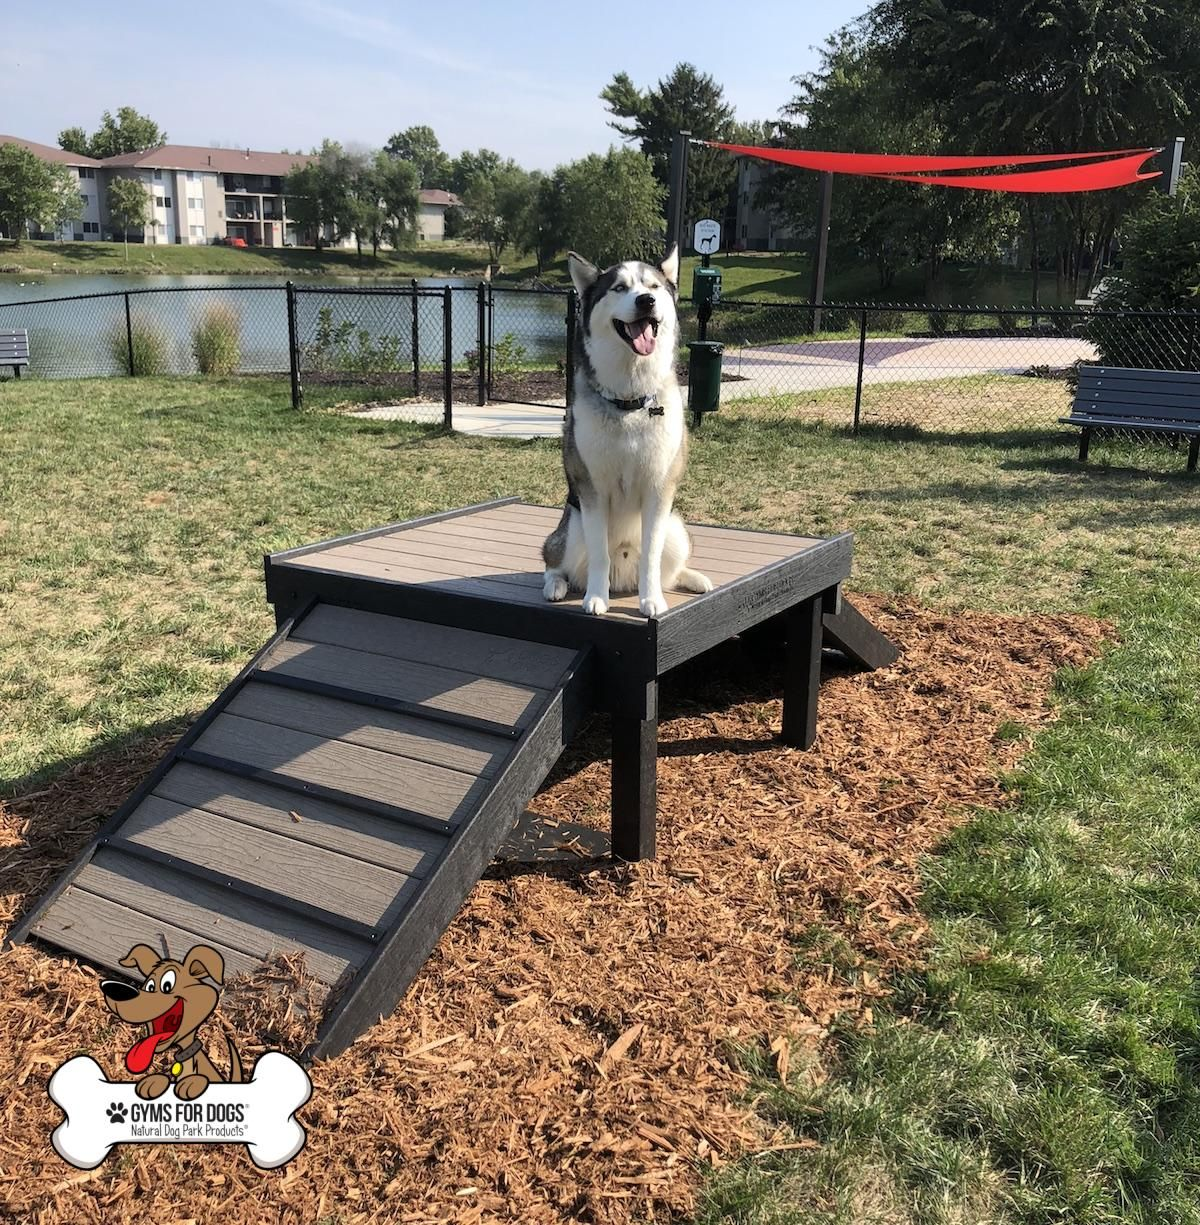 Dog Daycare Play Equipment in 2020 | Dog playground, Dog ...